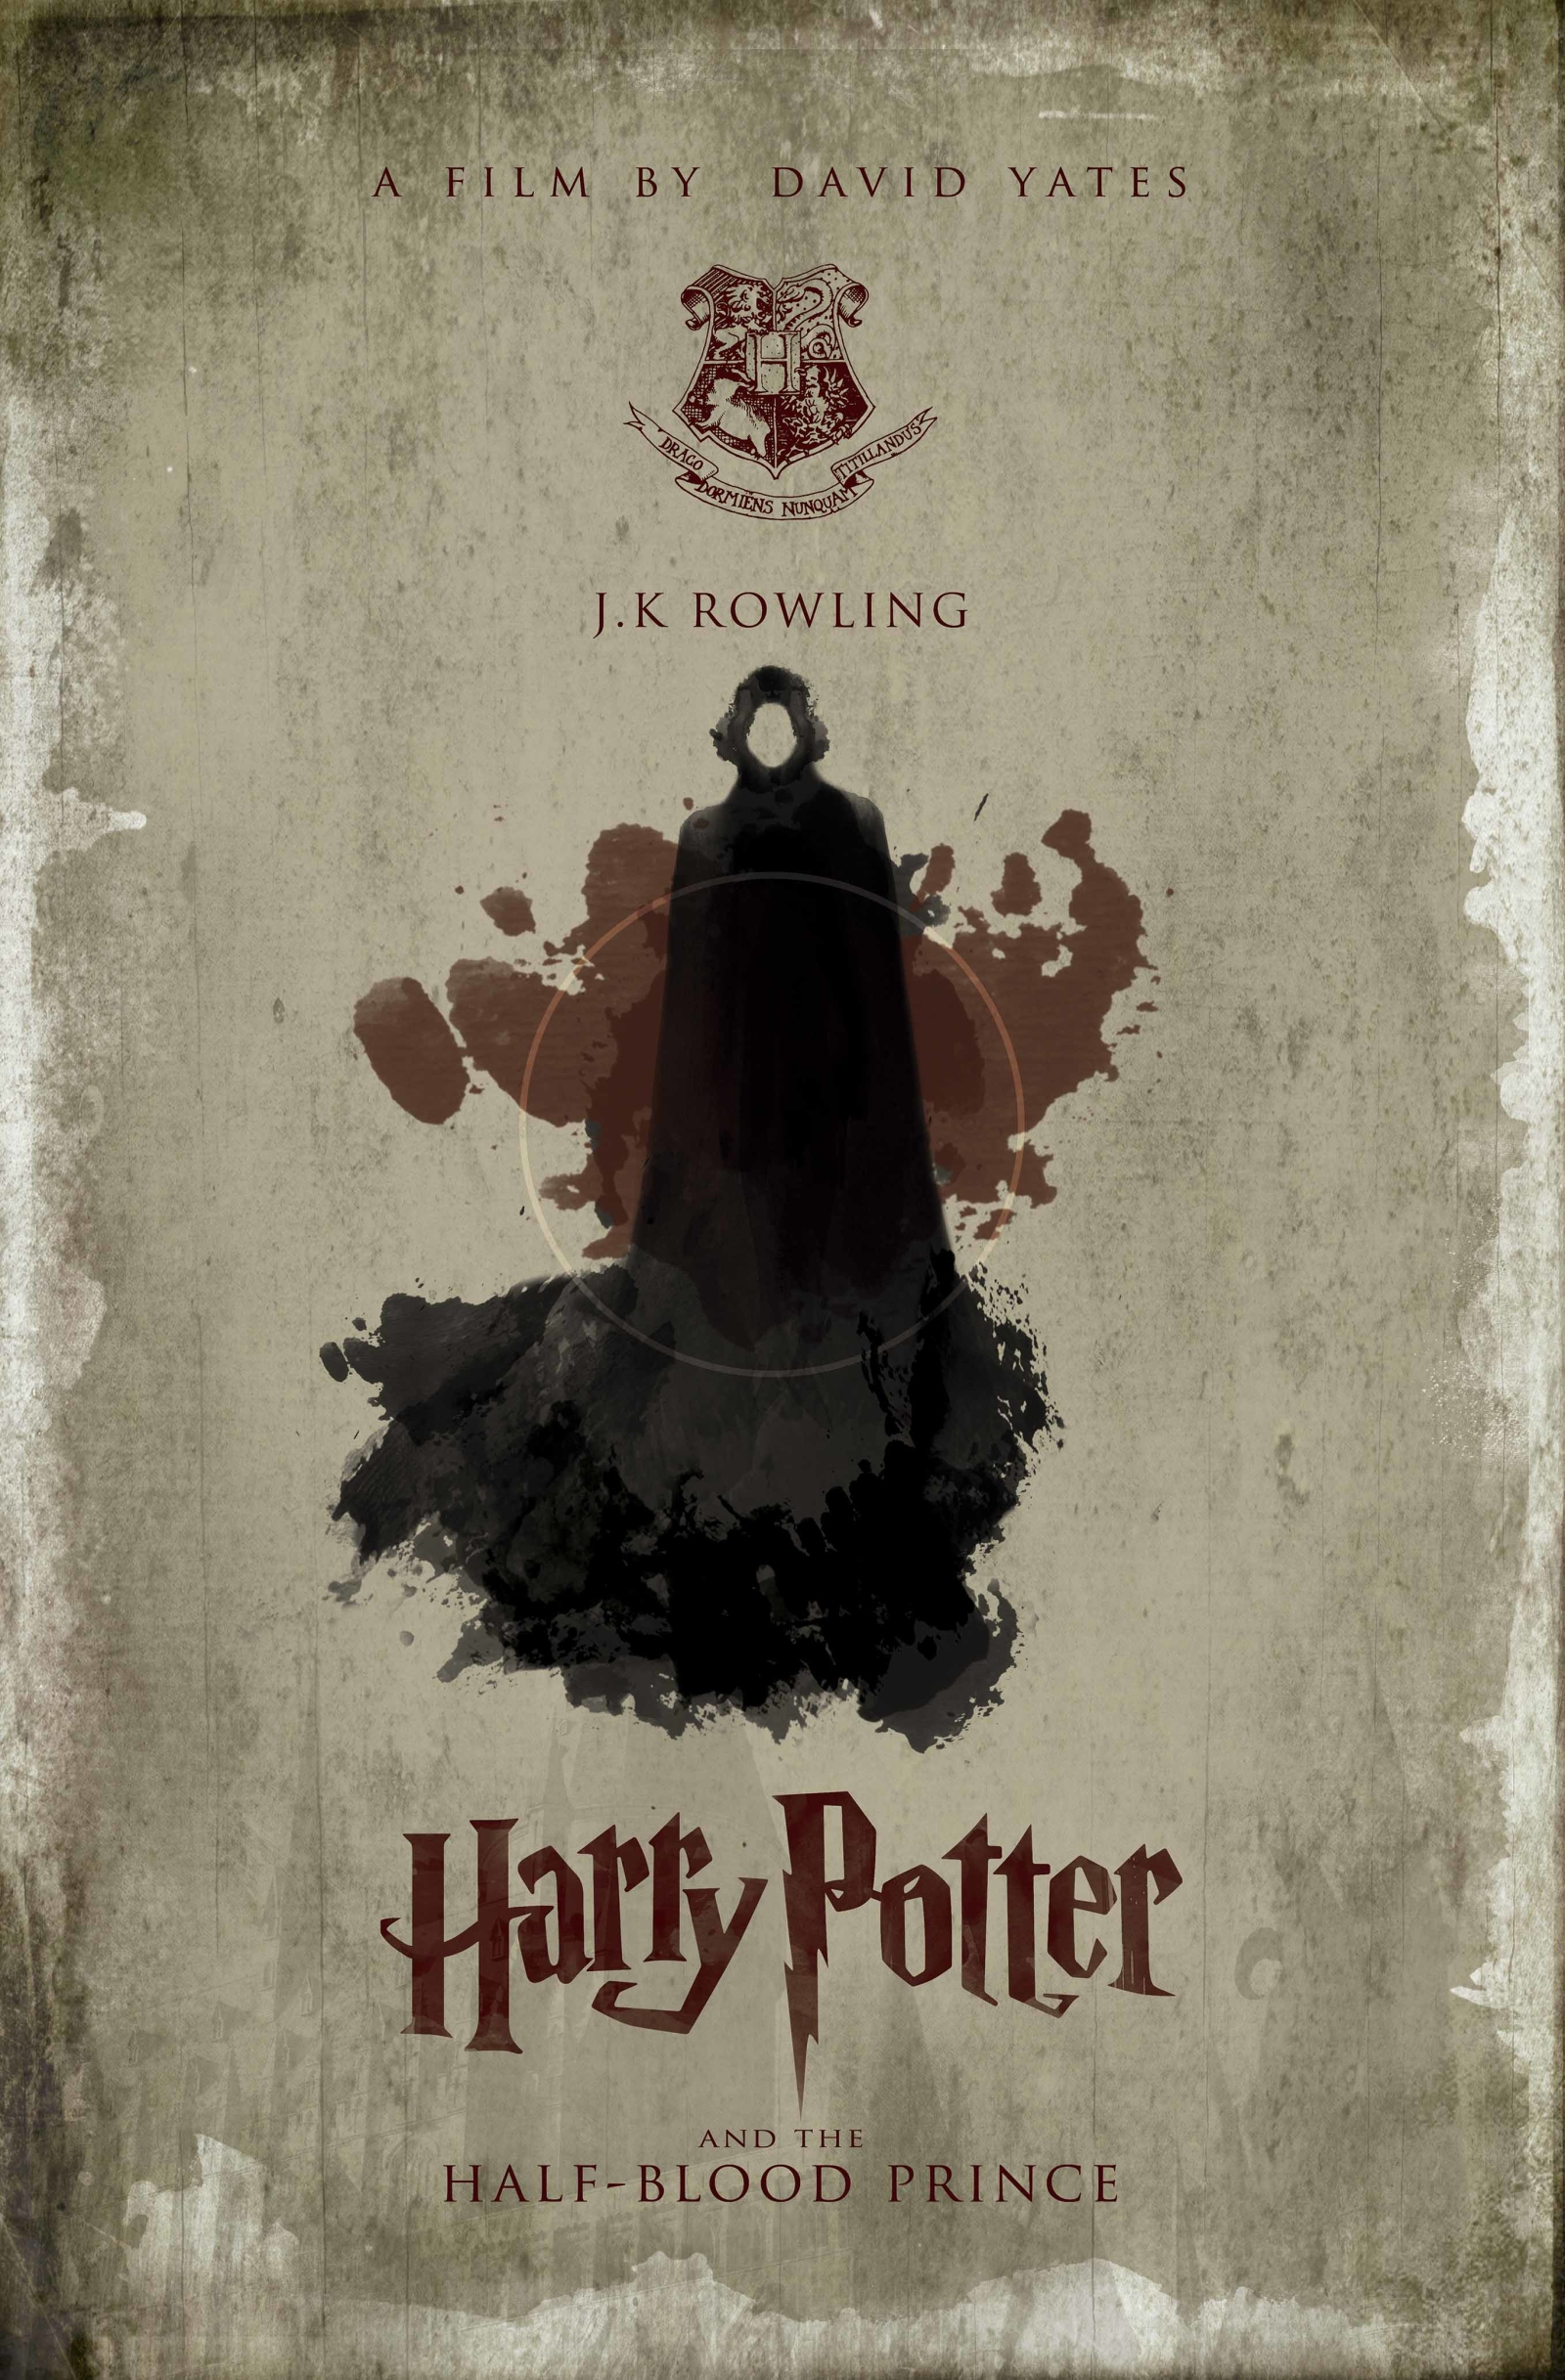 Harry Potter and the Half-Blood Prince - PosterSpy